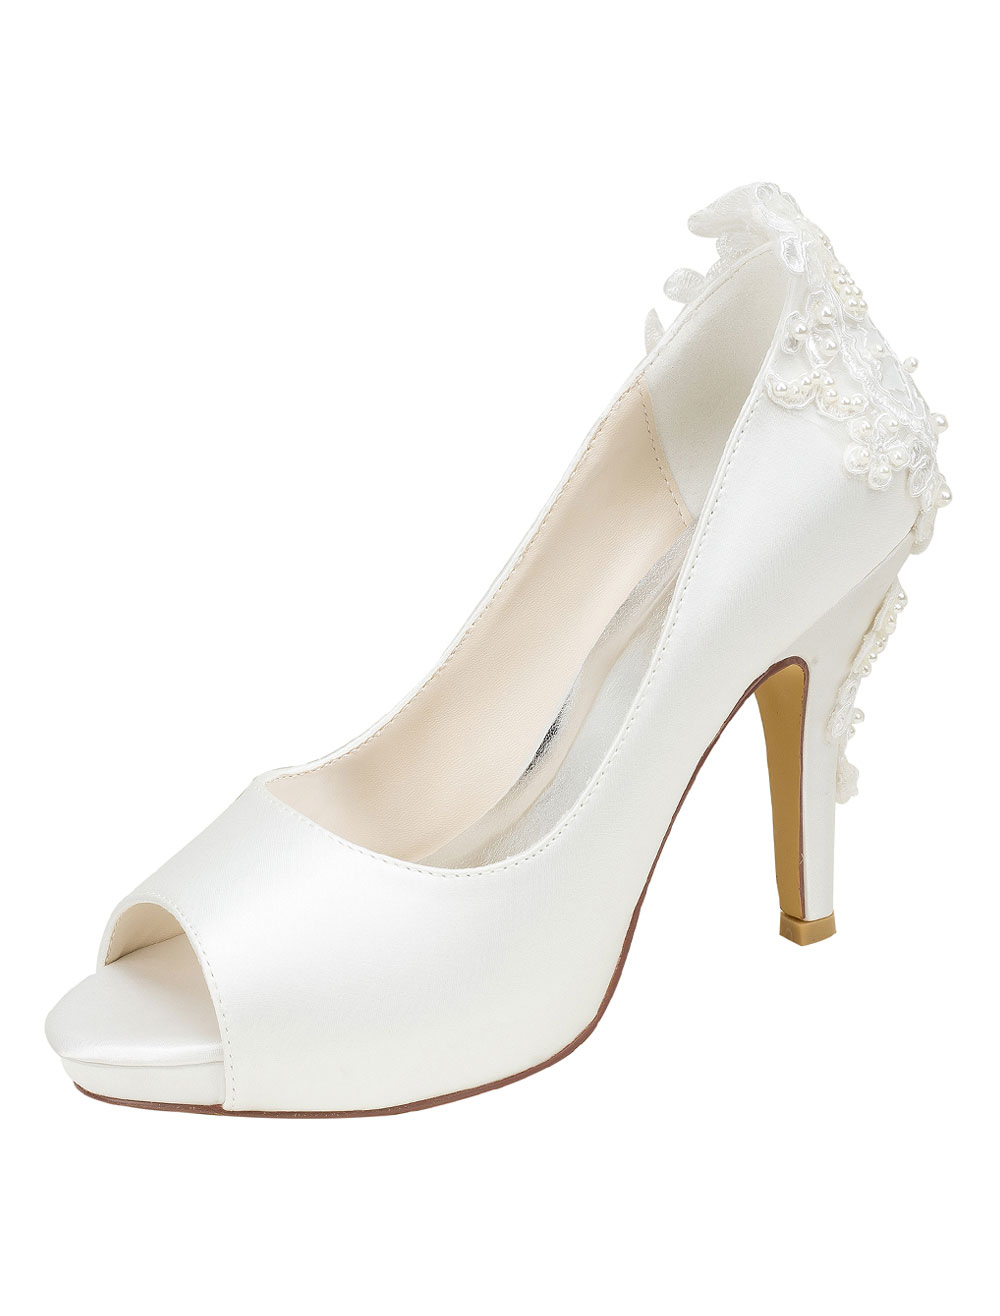 Buy Ivory Wedding Shoes Silk High Heel Peep Toe Pearls Detail Slip On Pumps for $55.09 in Milanoo store